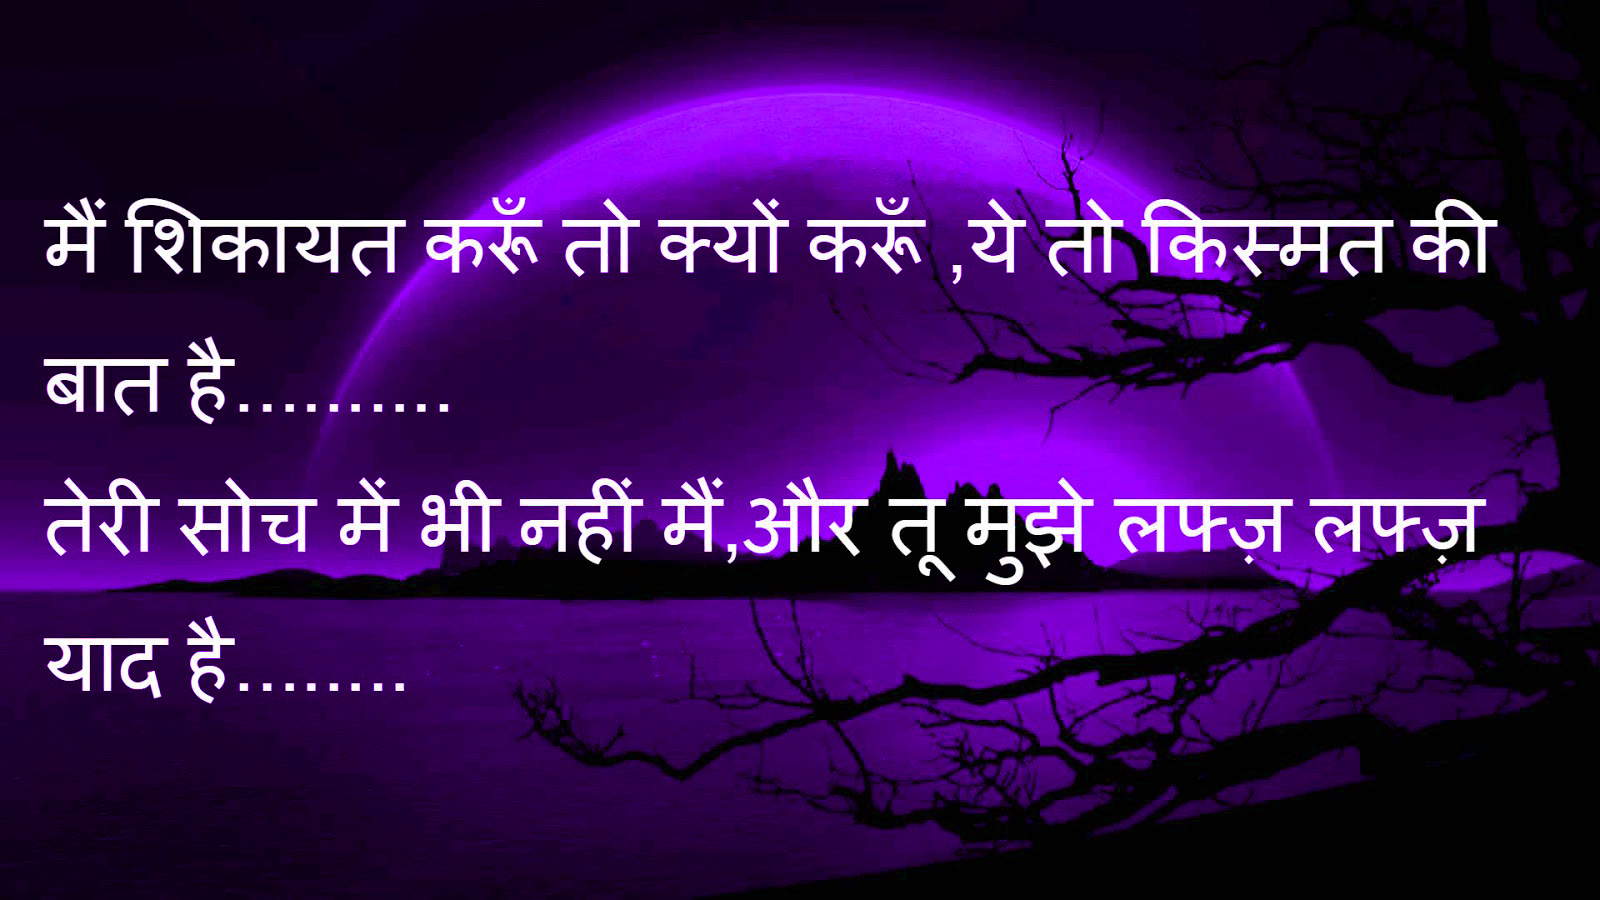 Sad Love Romantic Life Best Hindi Shayari Images Wallpaper Pics Download